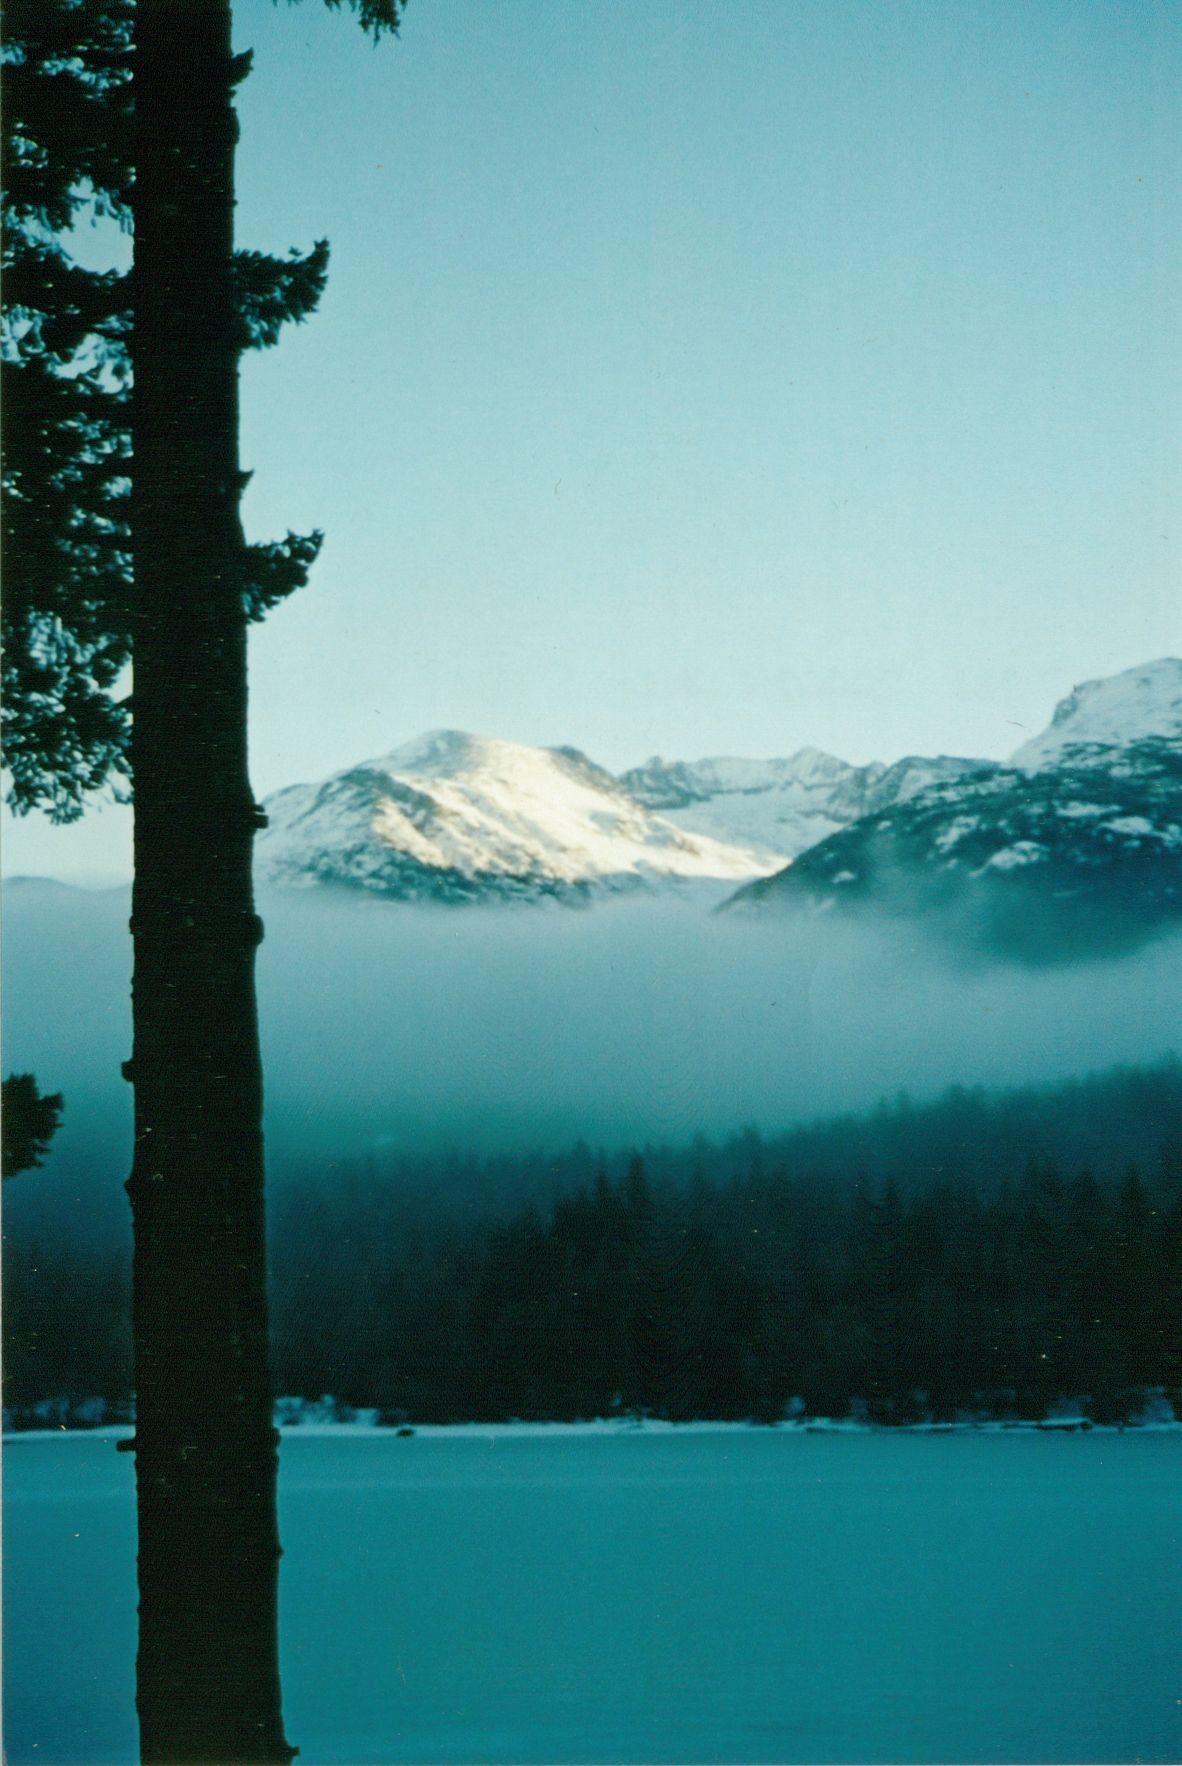 View of the Armchair Glacier, Whistler, B.C. Whistler